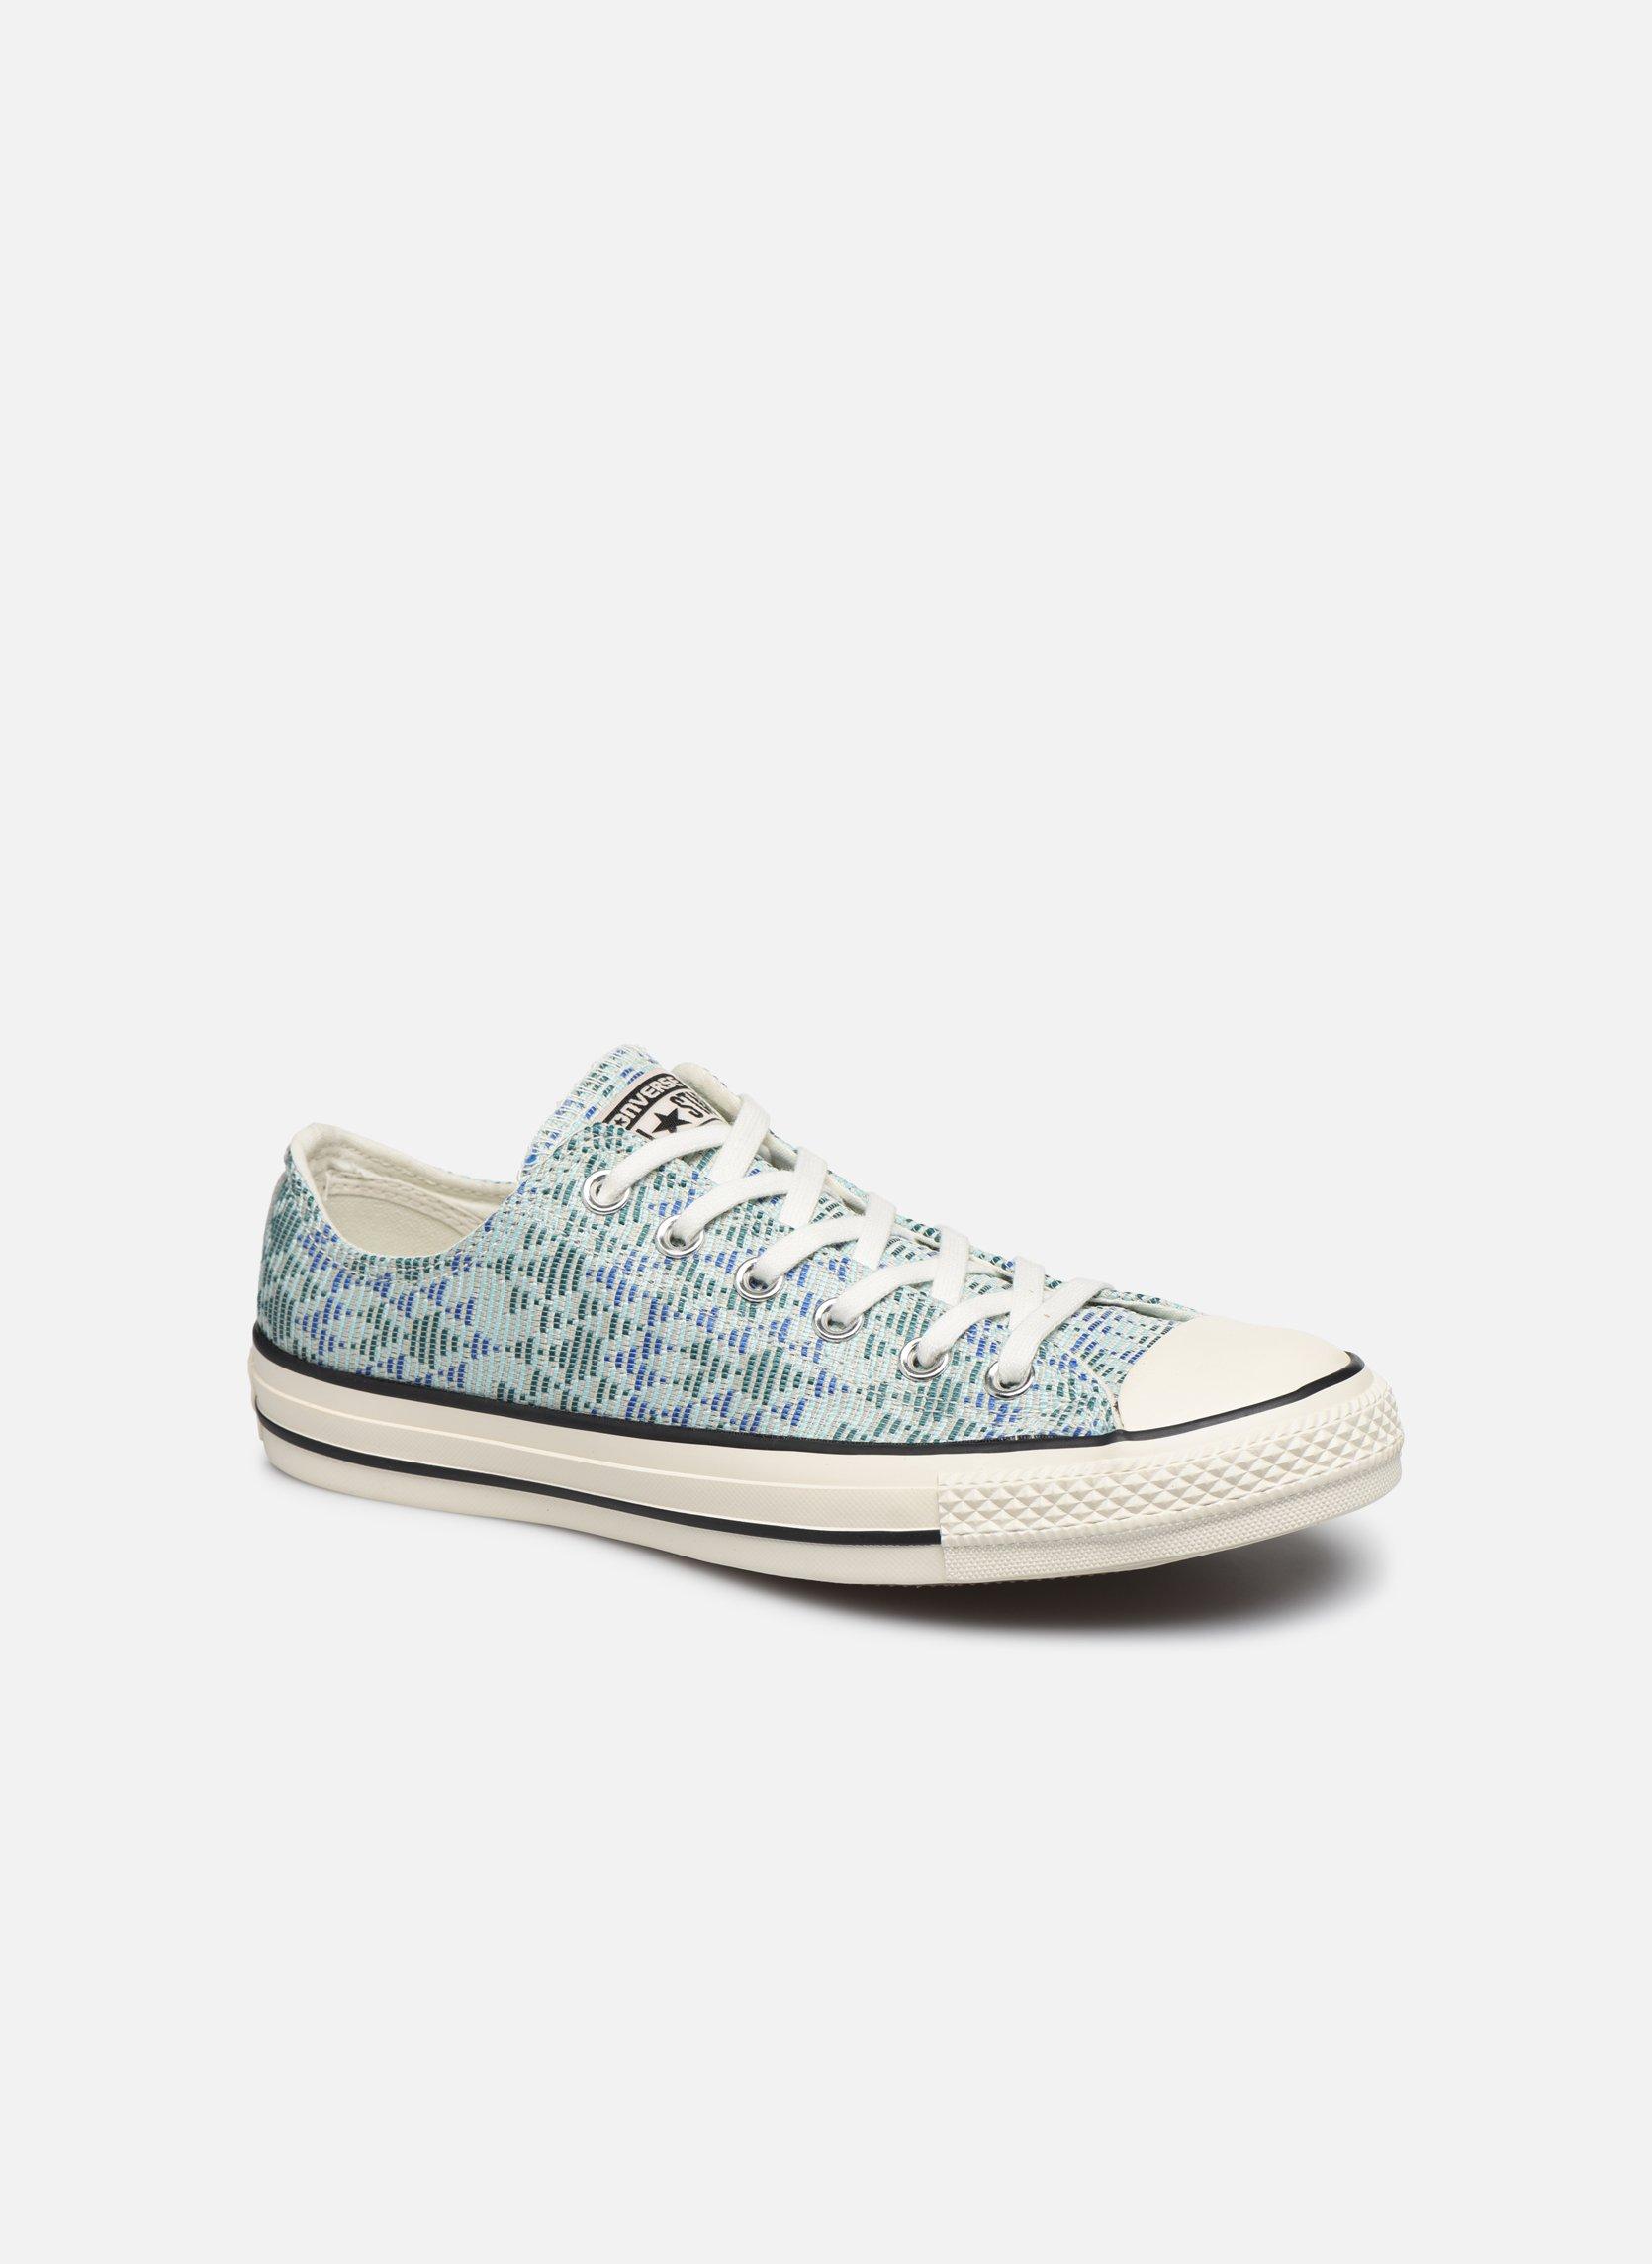 Rebel Teal/Converse Natural/La